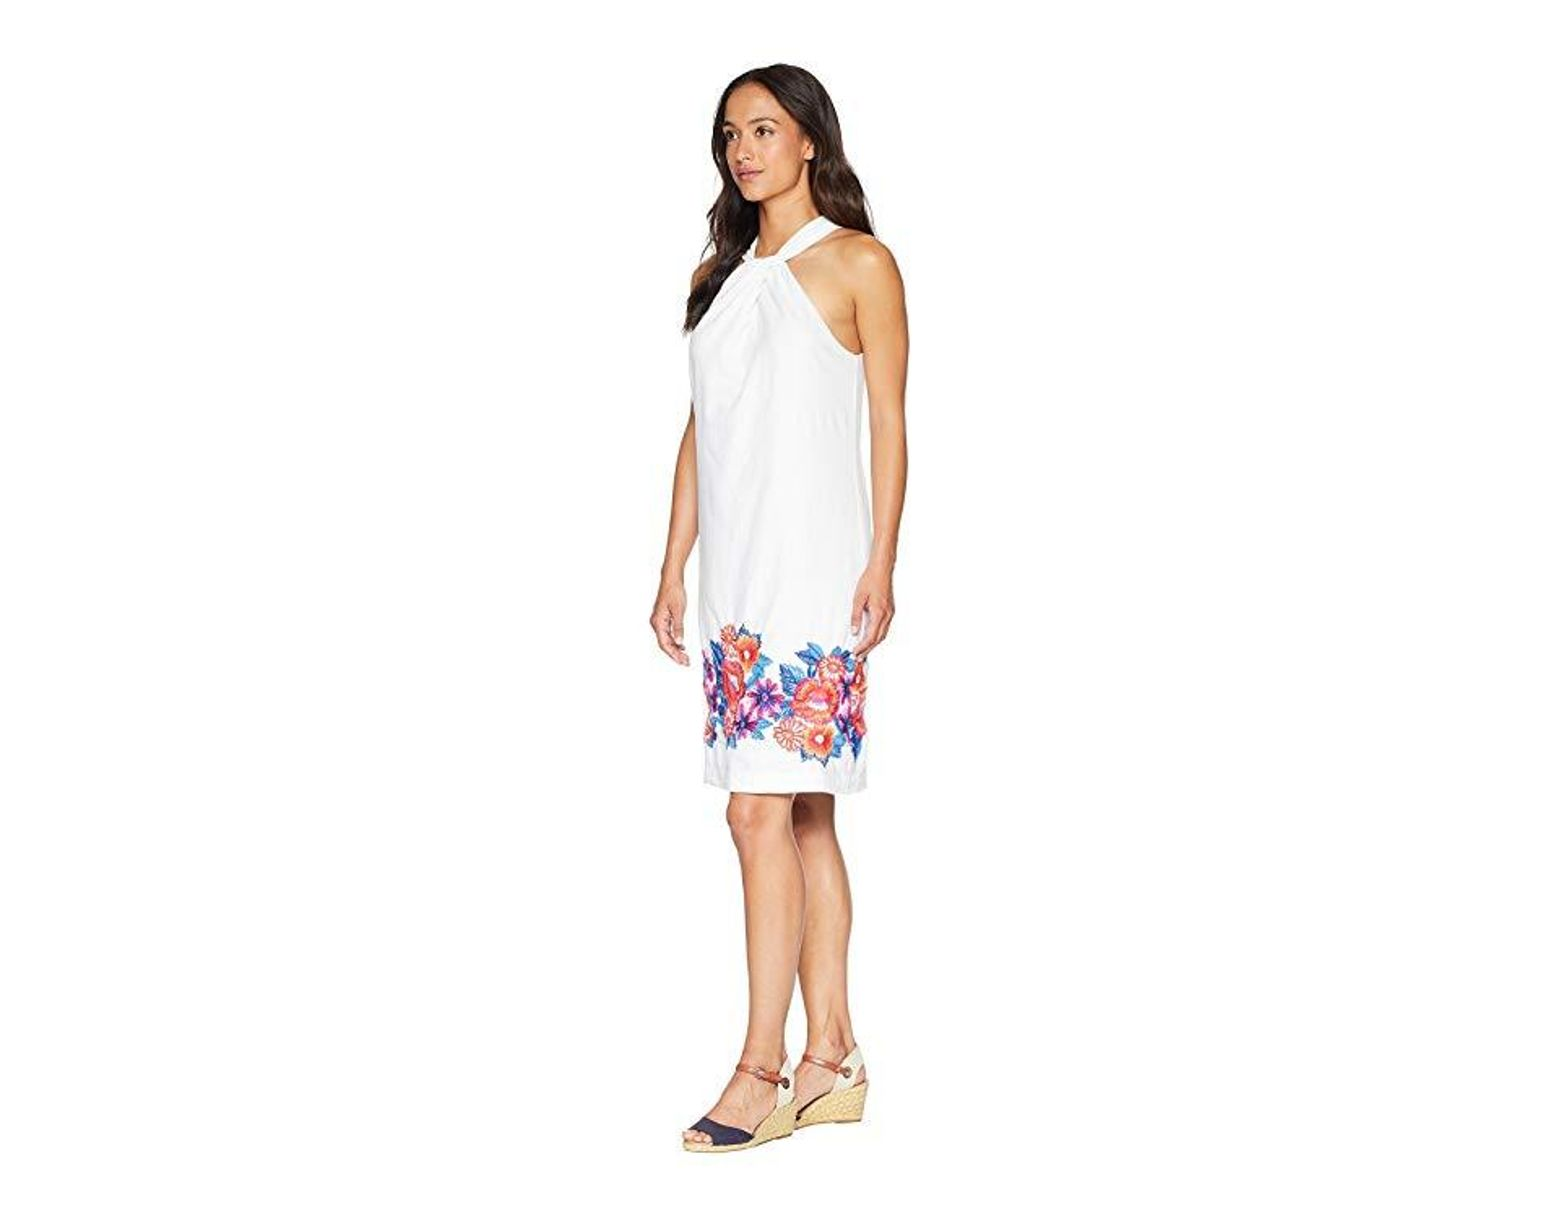 bb786c98dccd Tommy Bahama Frieda Floral Halter Dress (white) Dress in White - Save 5% -  Lyst